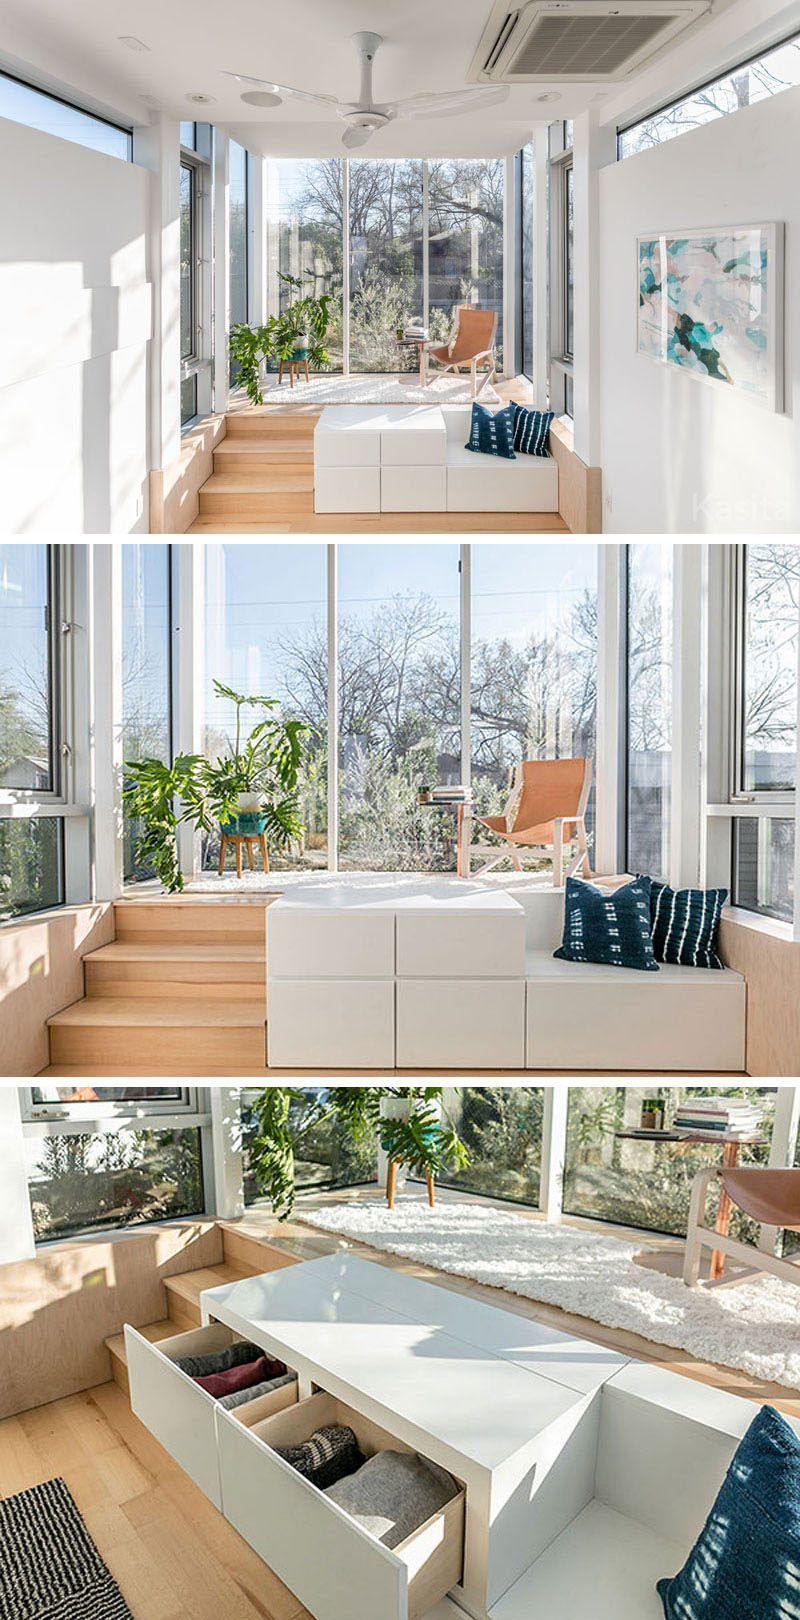 In this modern tiny house theres a raised platform thats surrounded by floor to ceiling windows allowing plenty of light to fill the small space